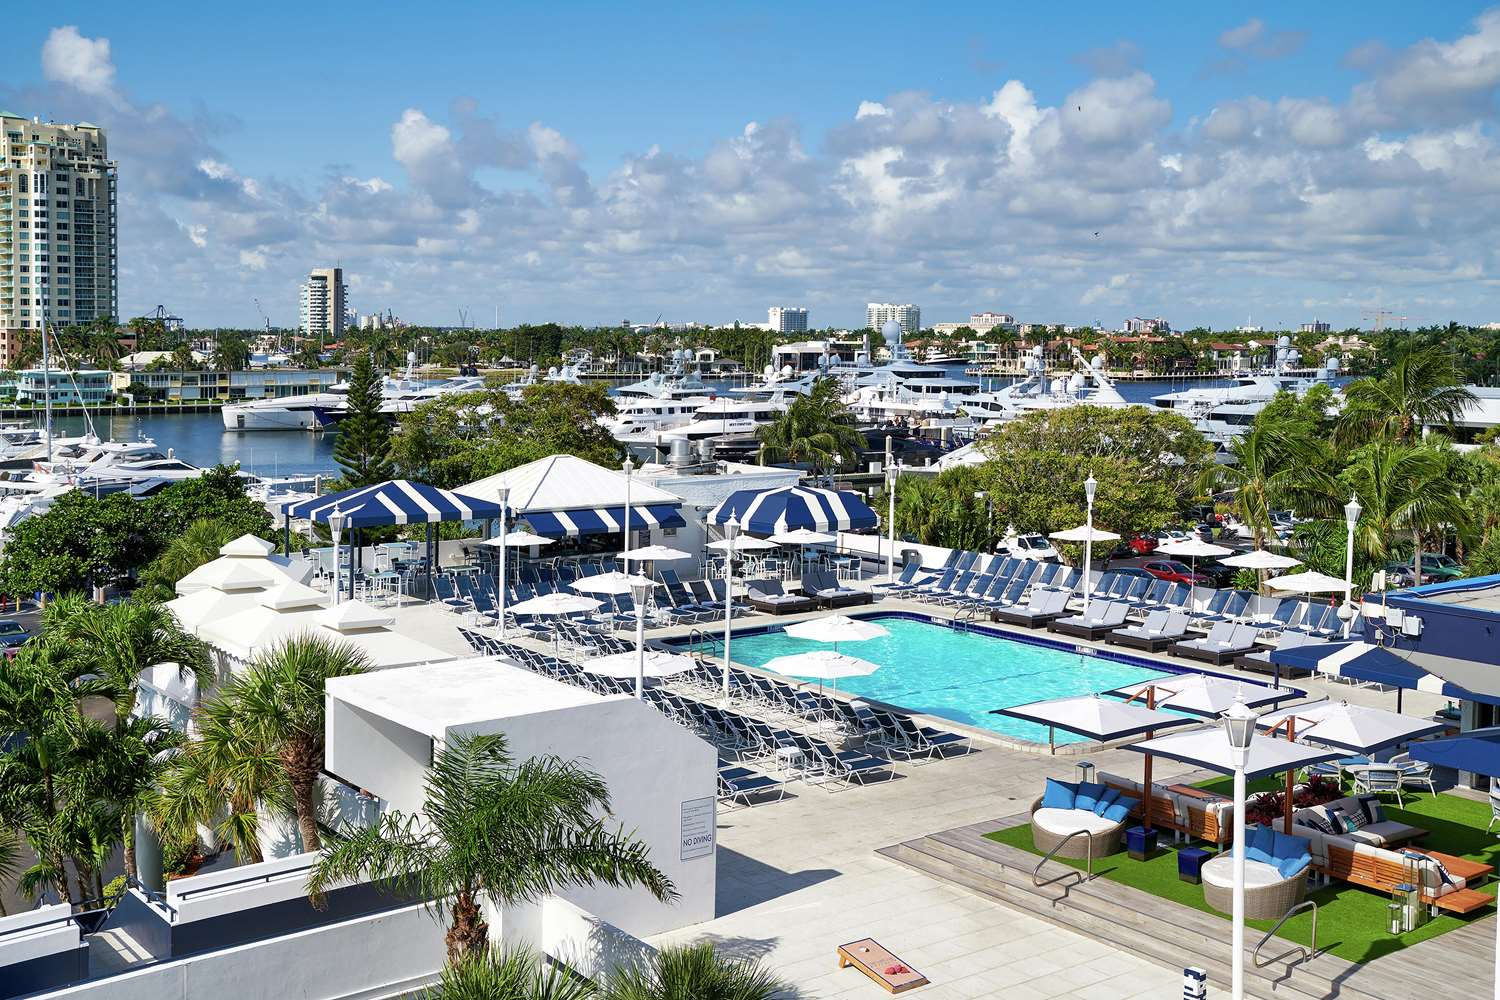 Pool - Bahia Mar Hotel Fort Lauderdale